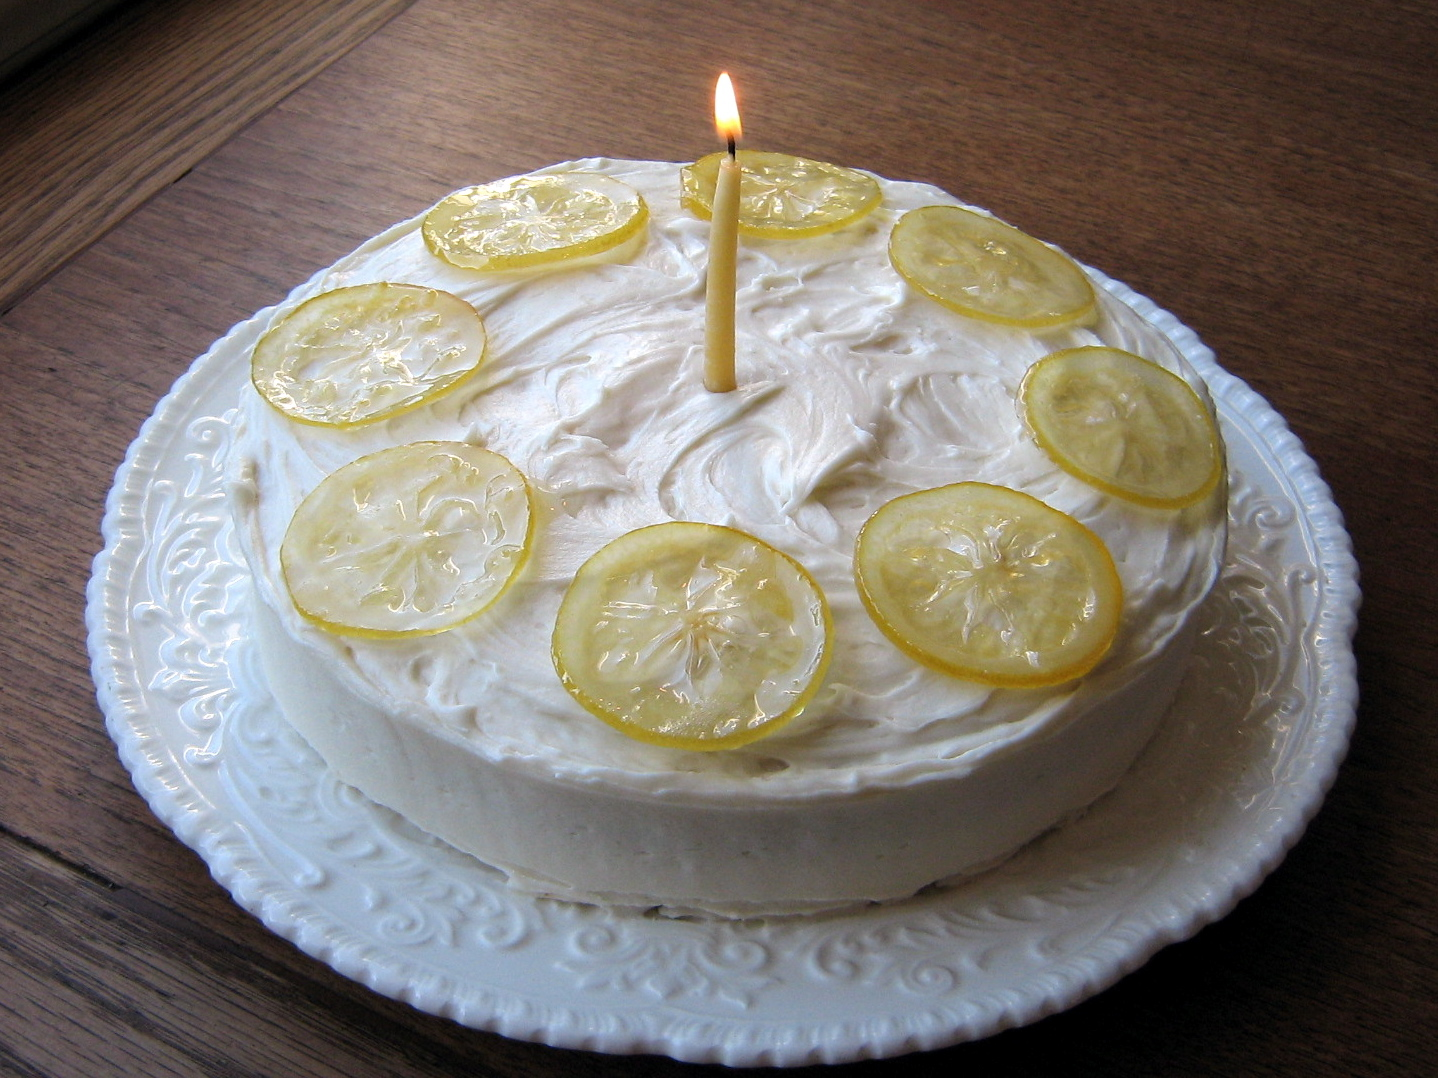 Lemontastic Birthday Cake with Lemon Curd Filling and Candied